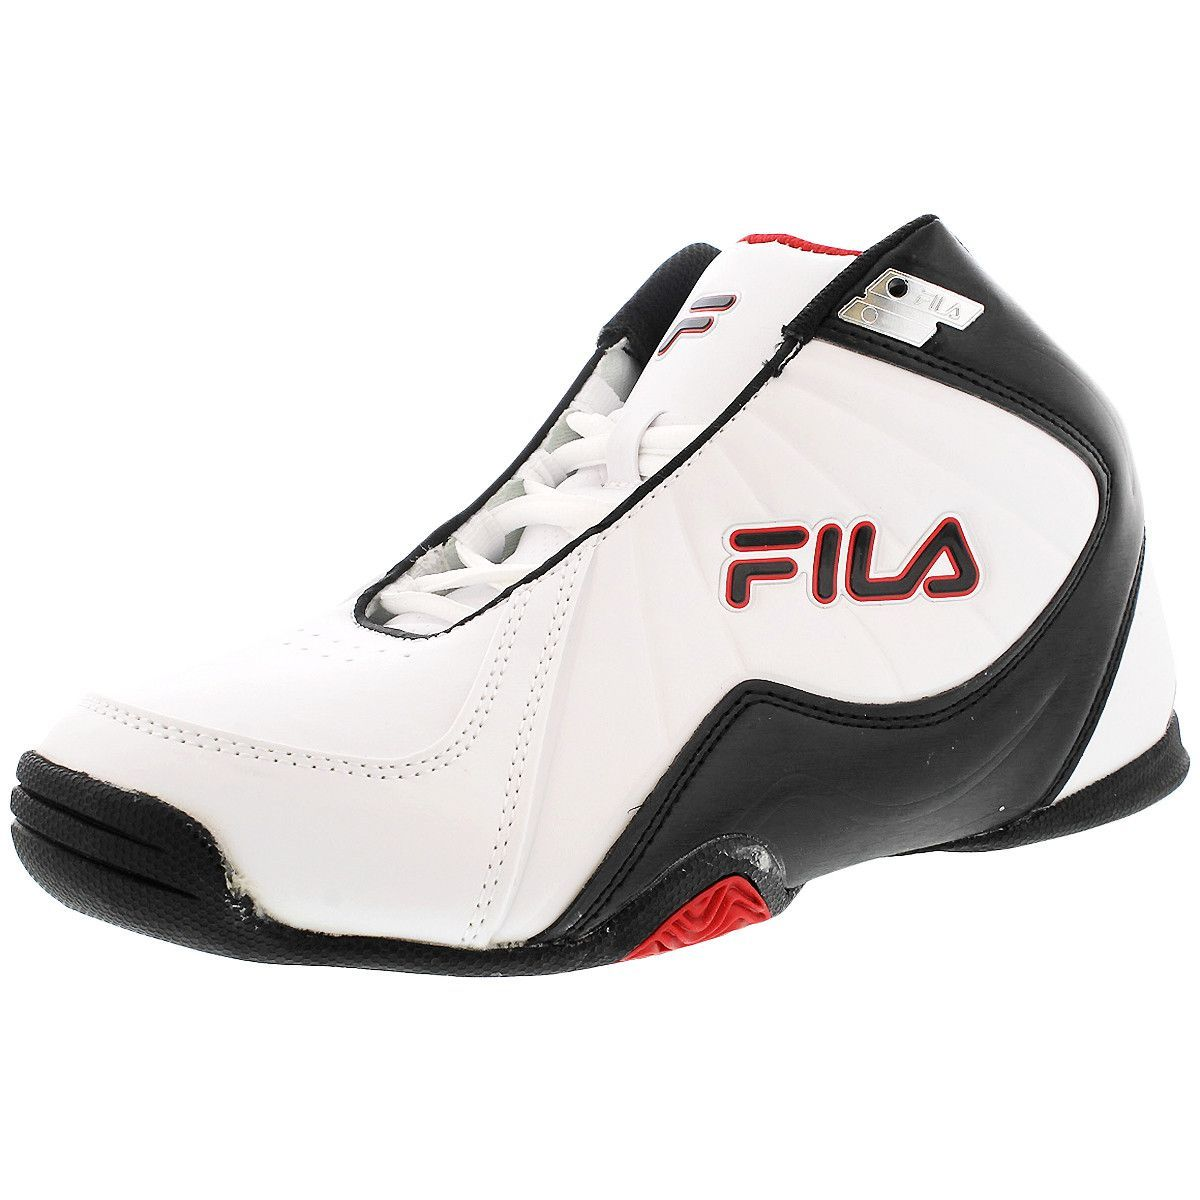 Fila - Men's Leave It On The Court Sneaker in White/Black/Red